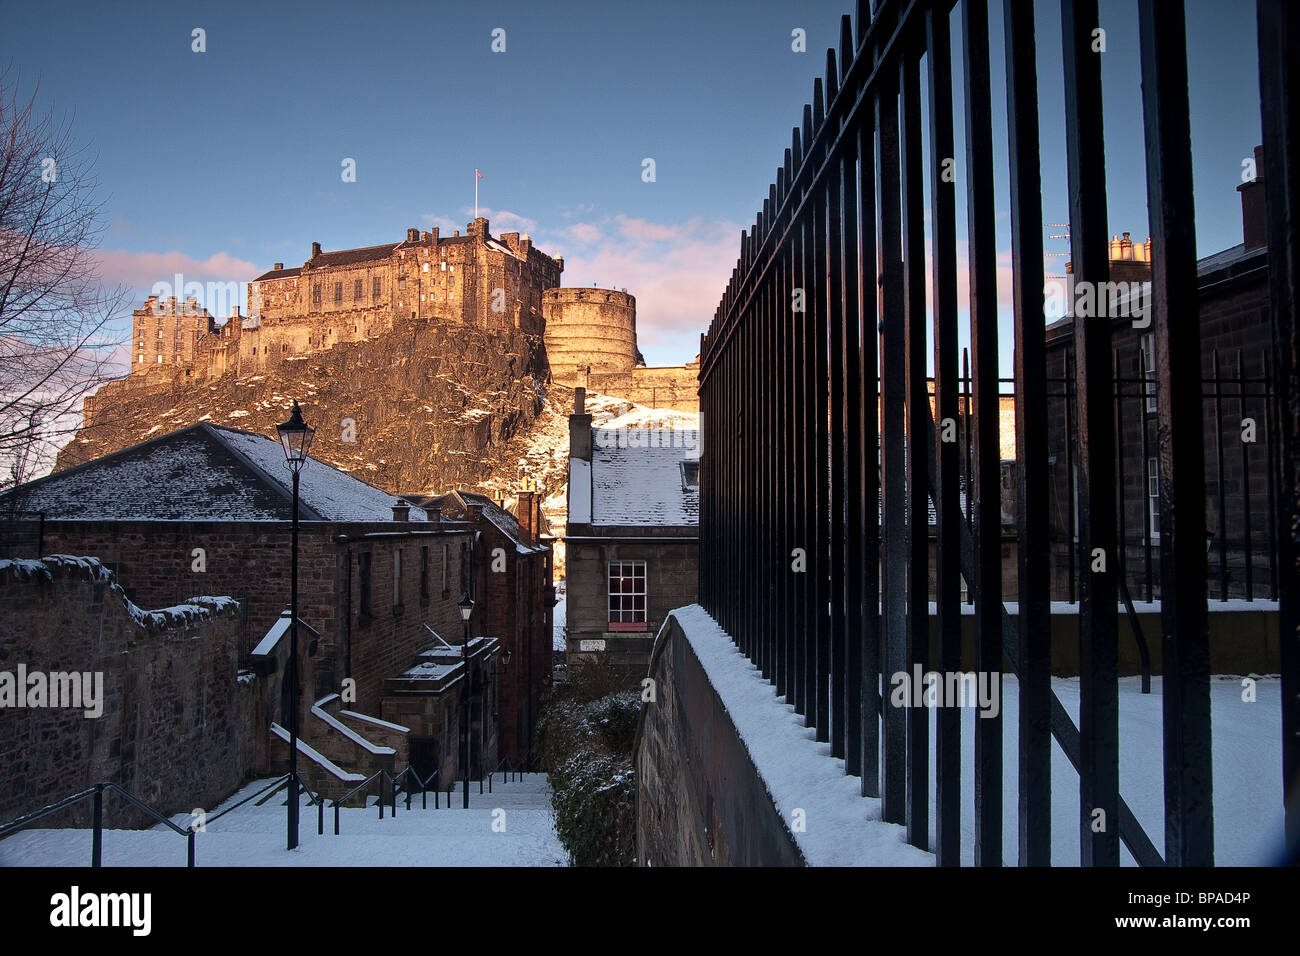 Edinburgh Castle in winter with snow on the ground but under sunshine and blue skies.  Image has a 'period', - Stock Image